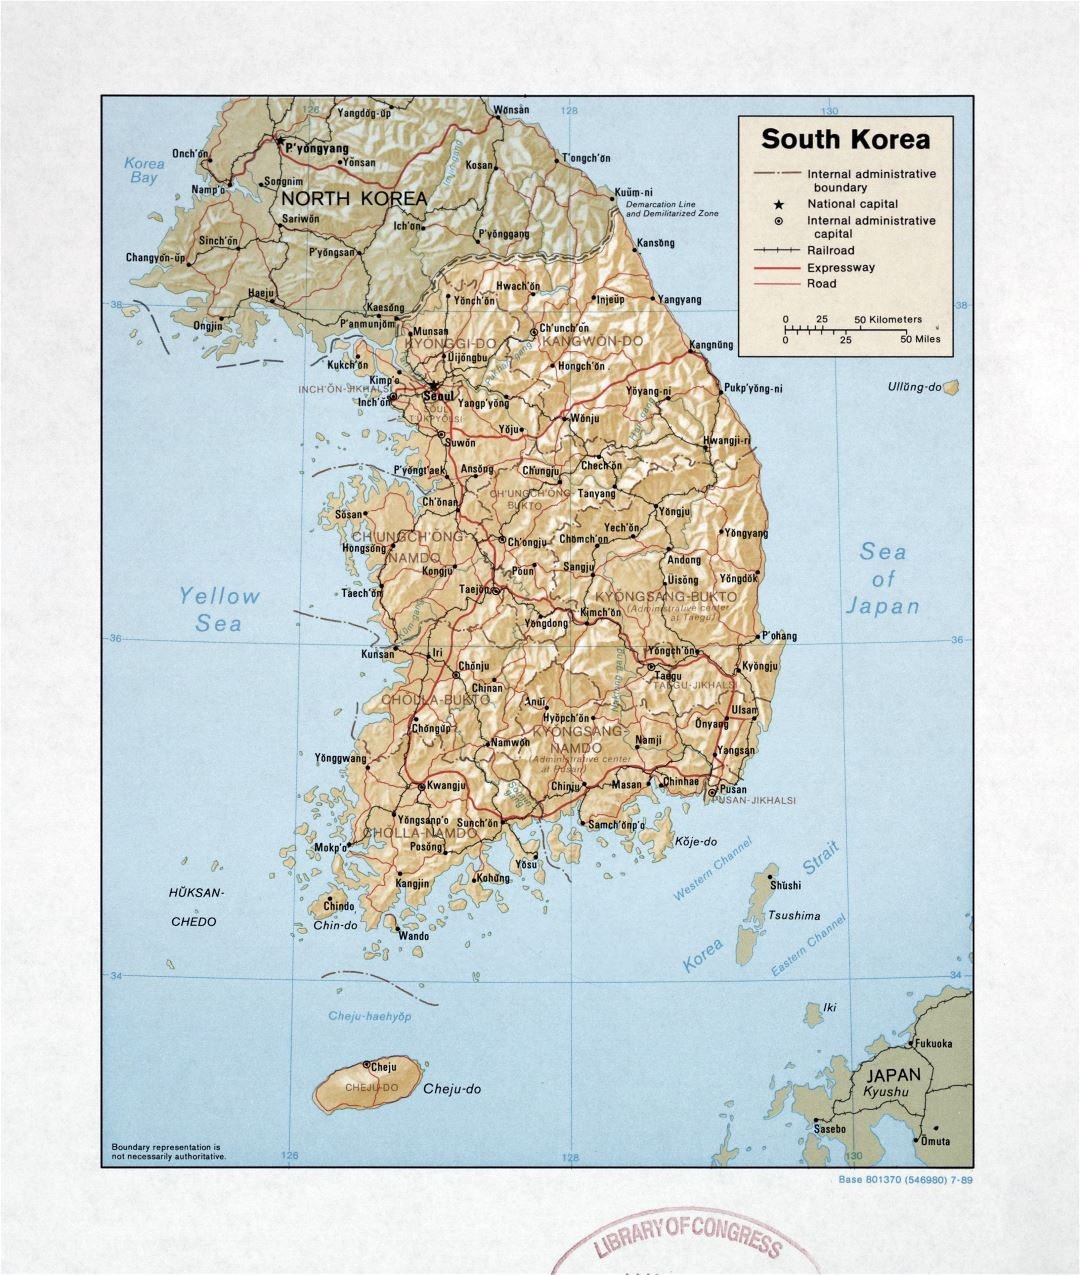 Large detailed political and administrative map of South Korea with relief, roads, railroads and major cities - 1989